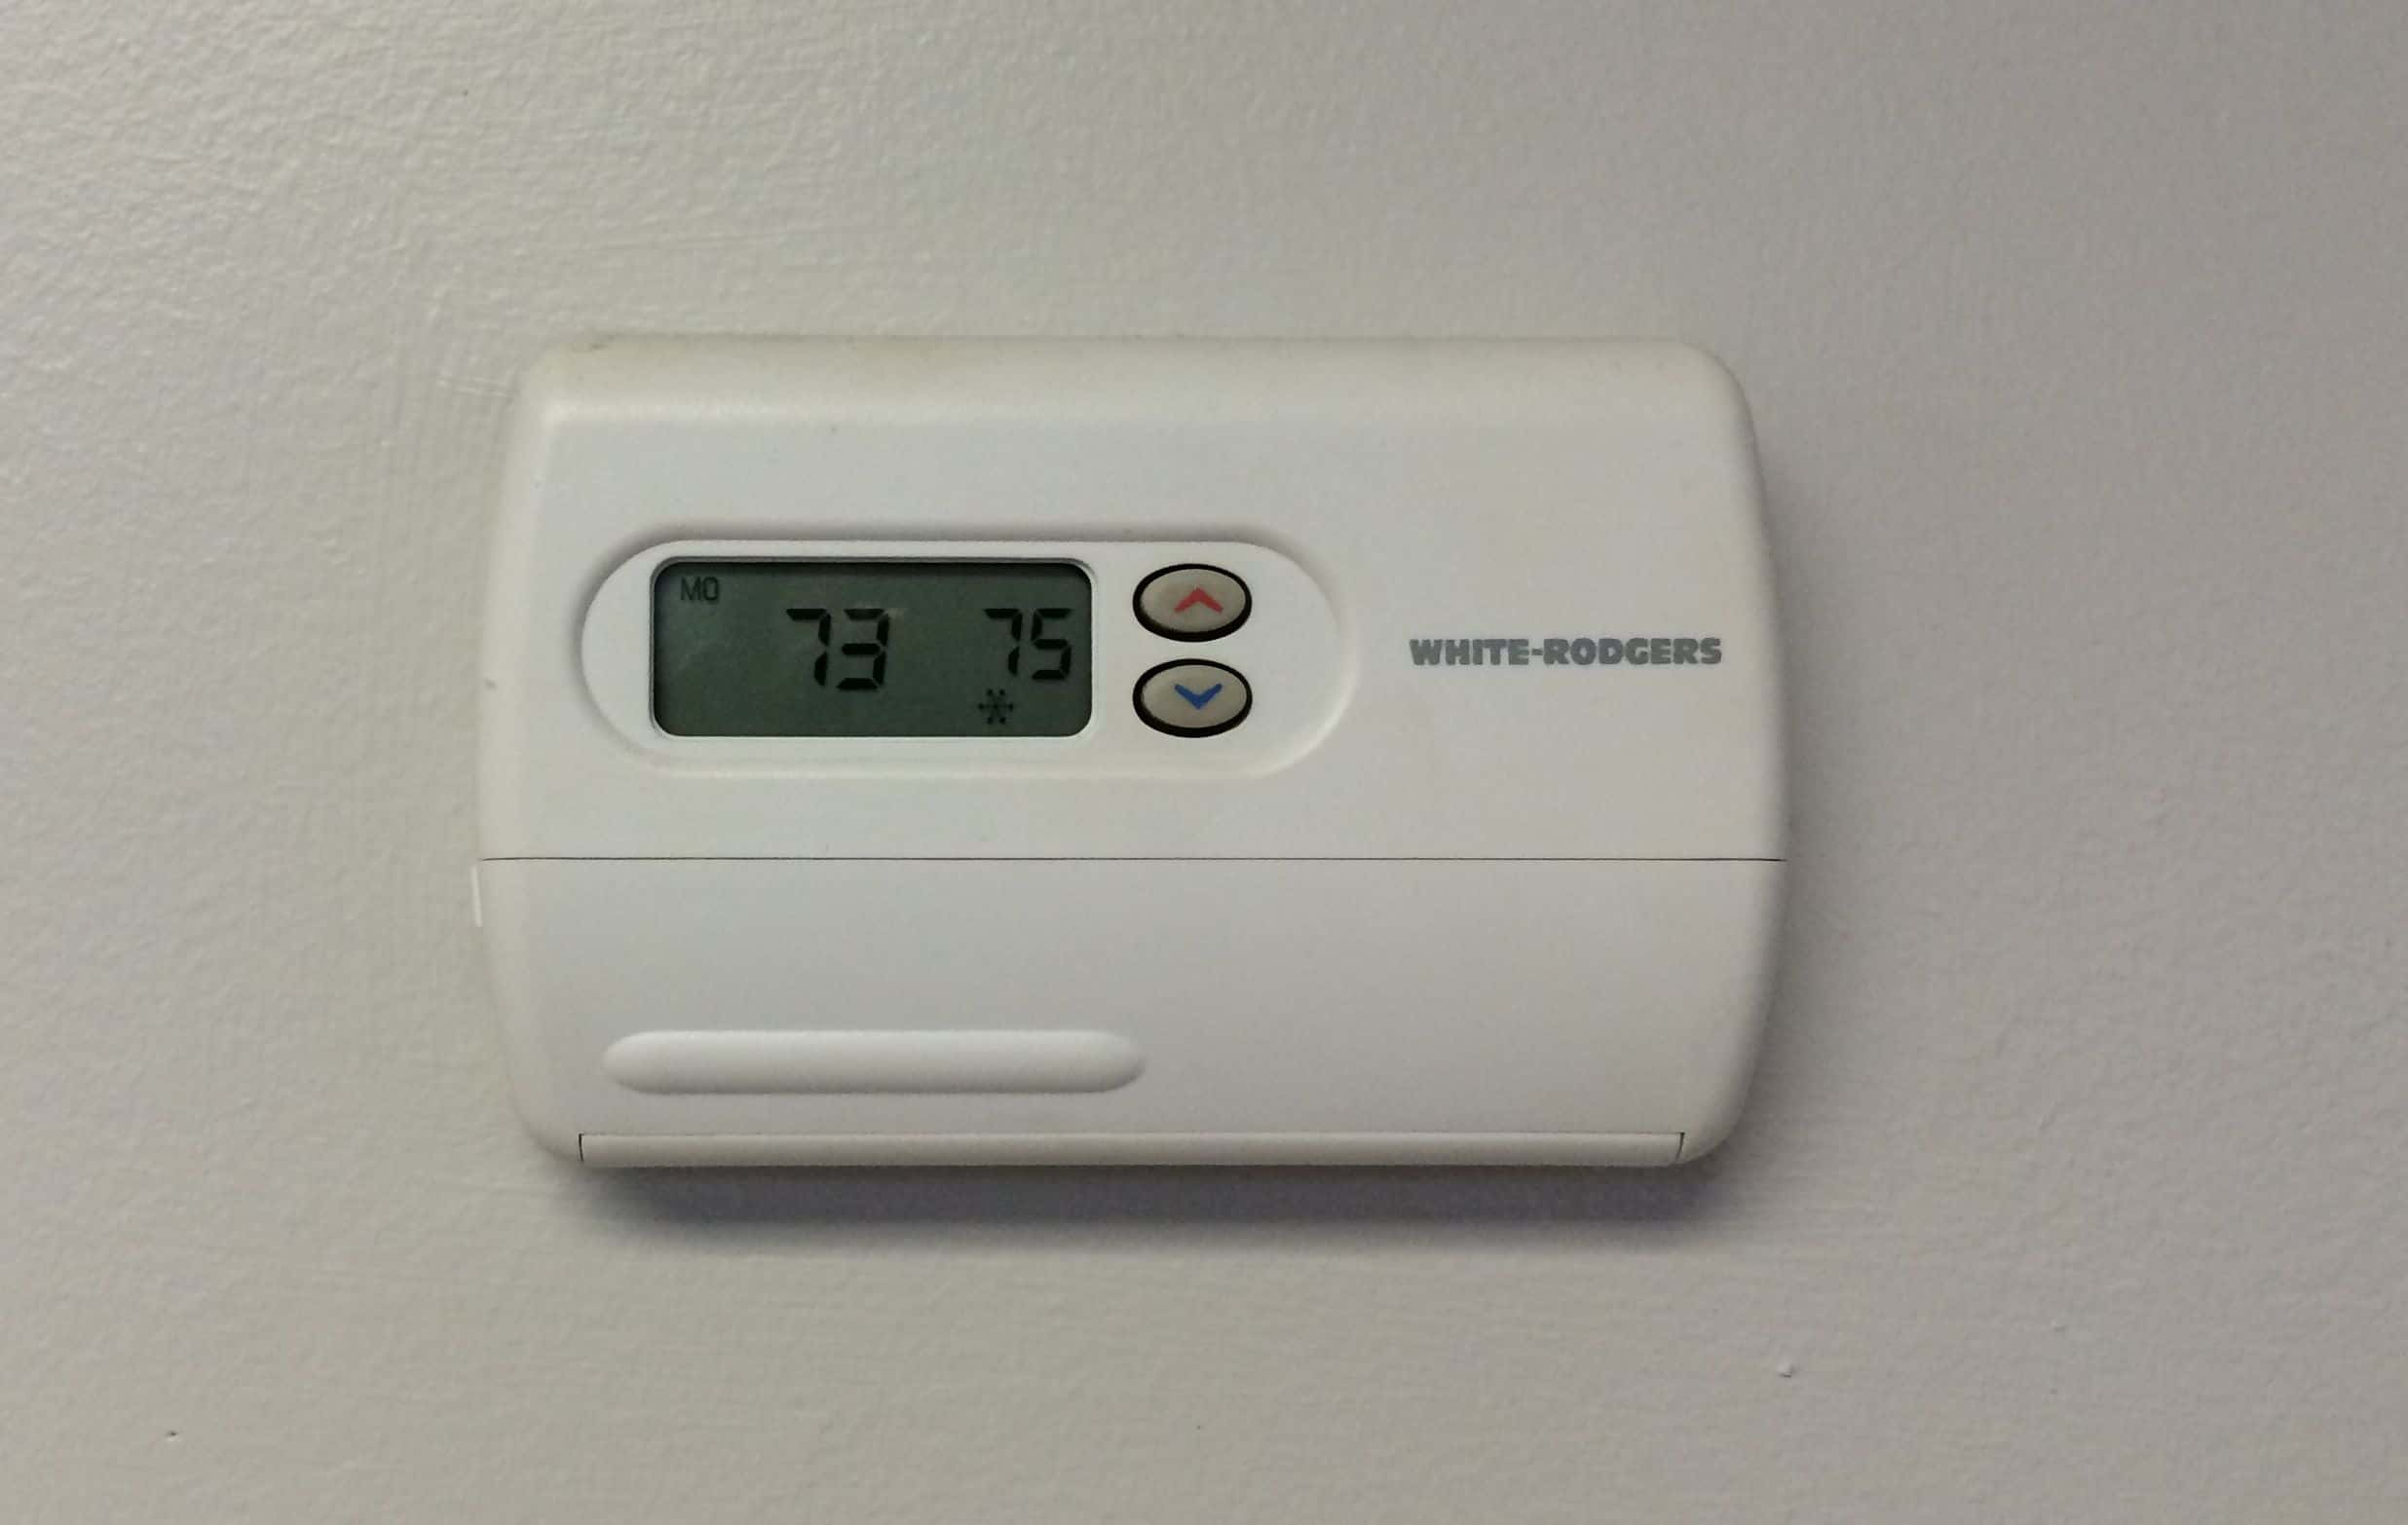 Now The Time To Apply For Home Heating Credit | News/Talk 94.9 WSJM